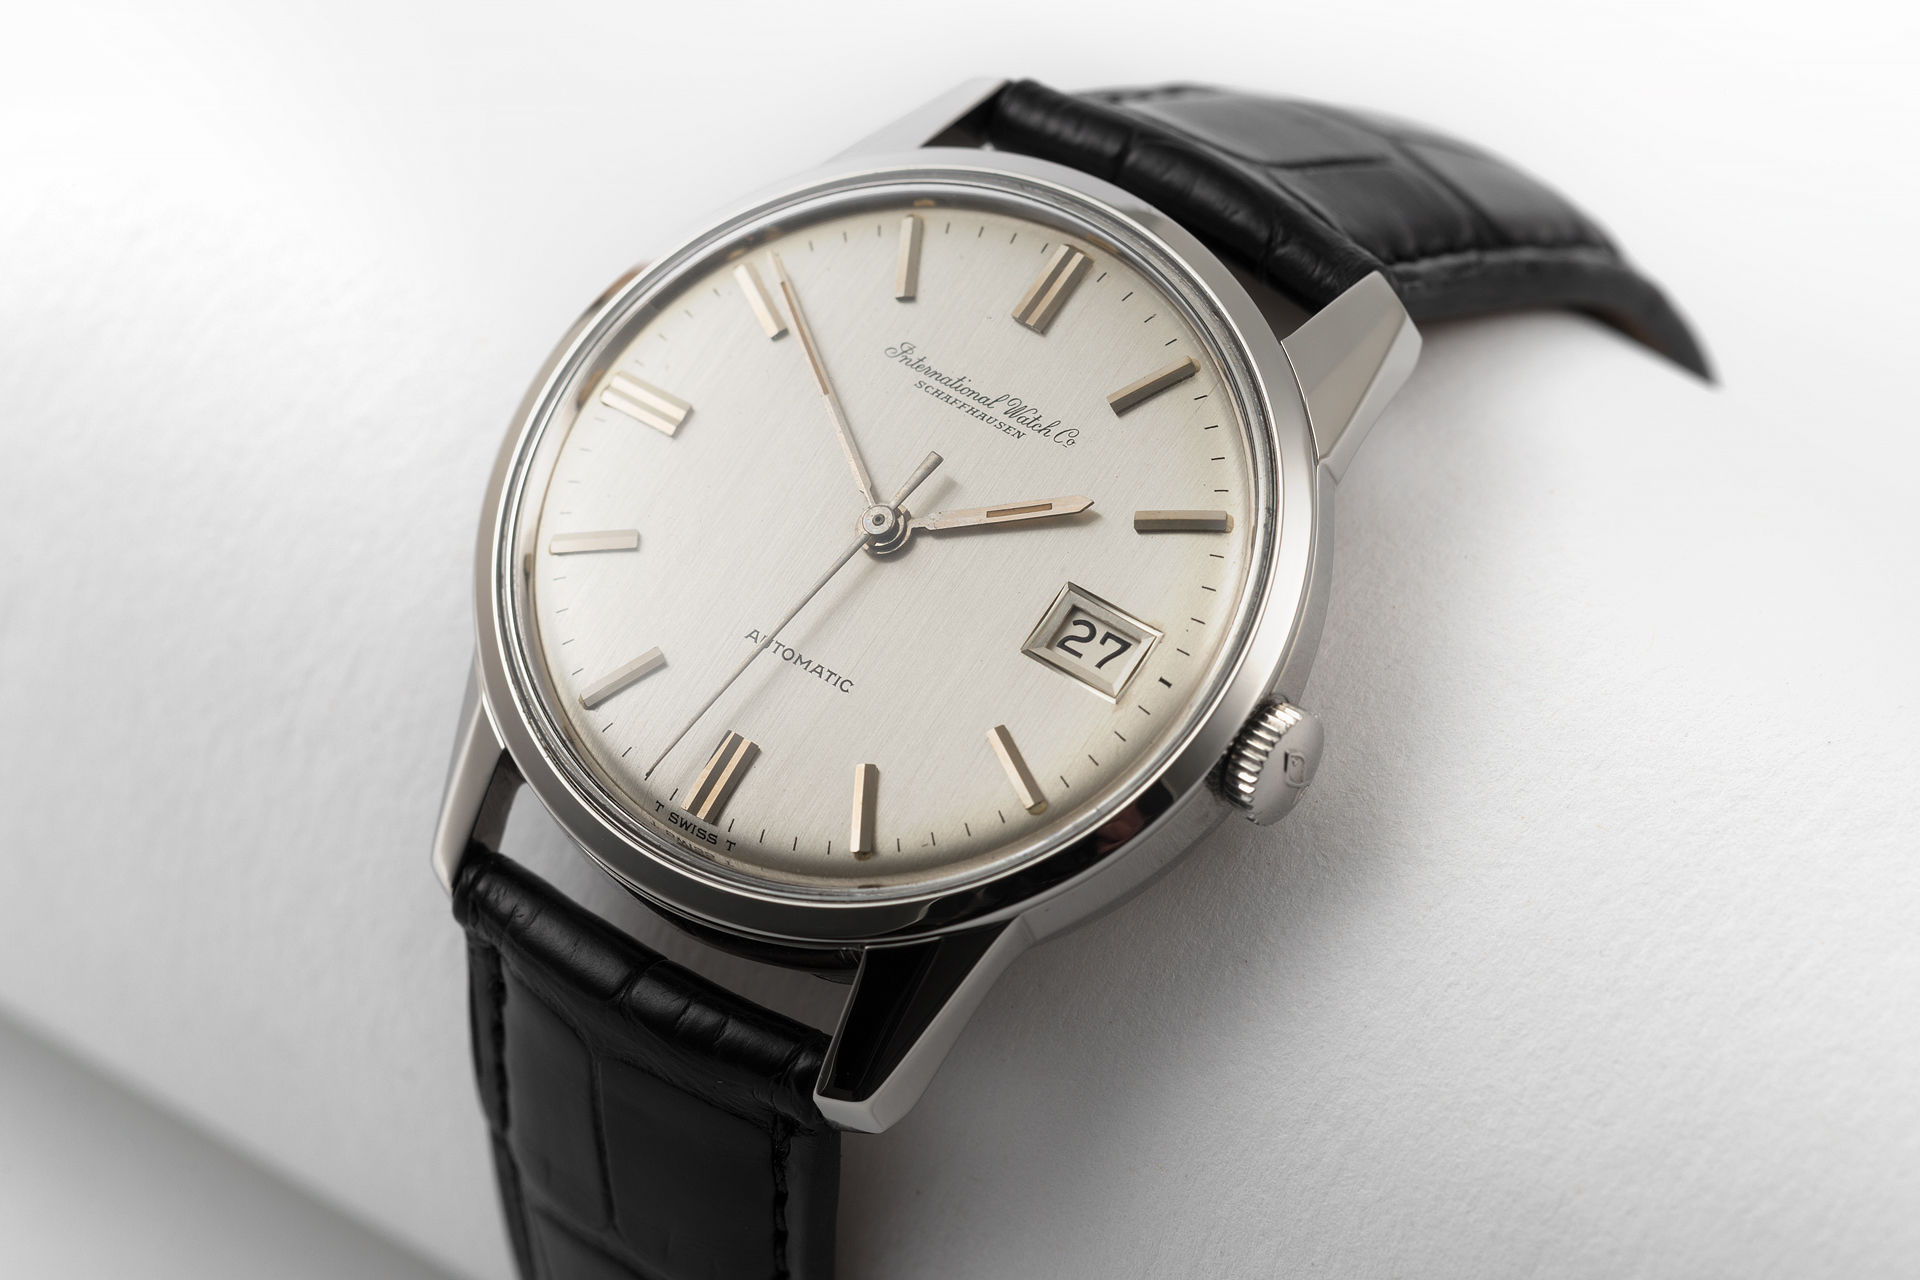 IWC Vintage Automatic Watches Ref 810A Stainless Steel Fish Crown The Watch Club